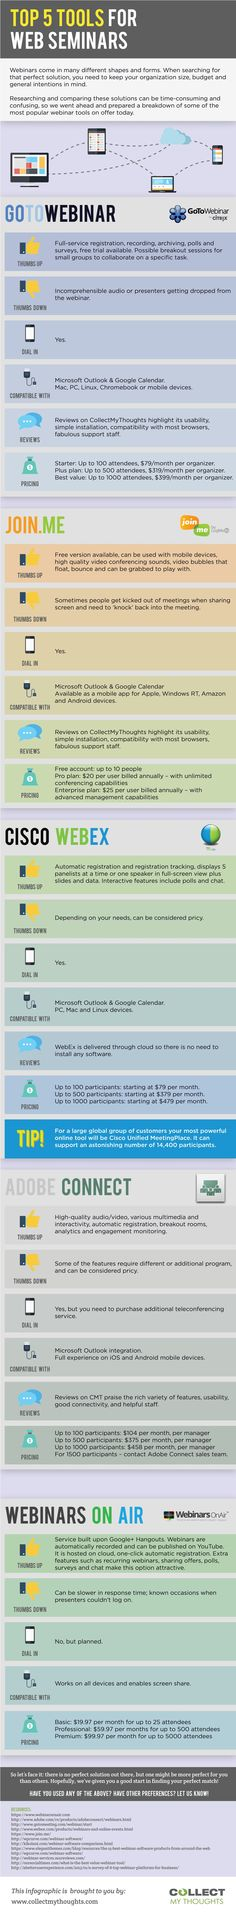 Top 5 Tools for Webinars Infographic - http://elearninginfographics.com/top-5-tools-webinars-infographic/